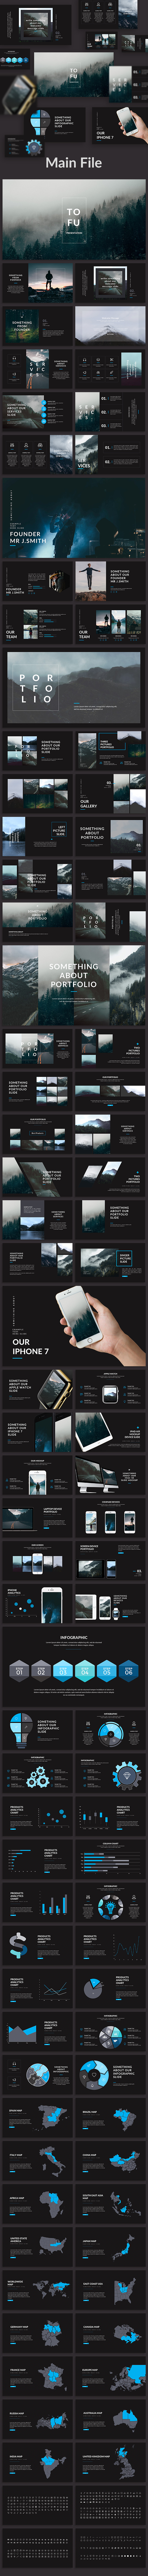 Tofu - Creative Keynote Template - Creative Keynote Templates